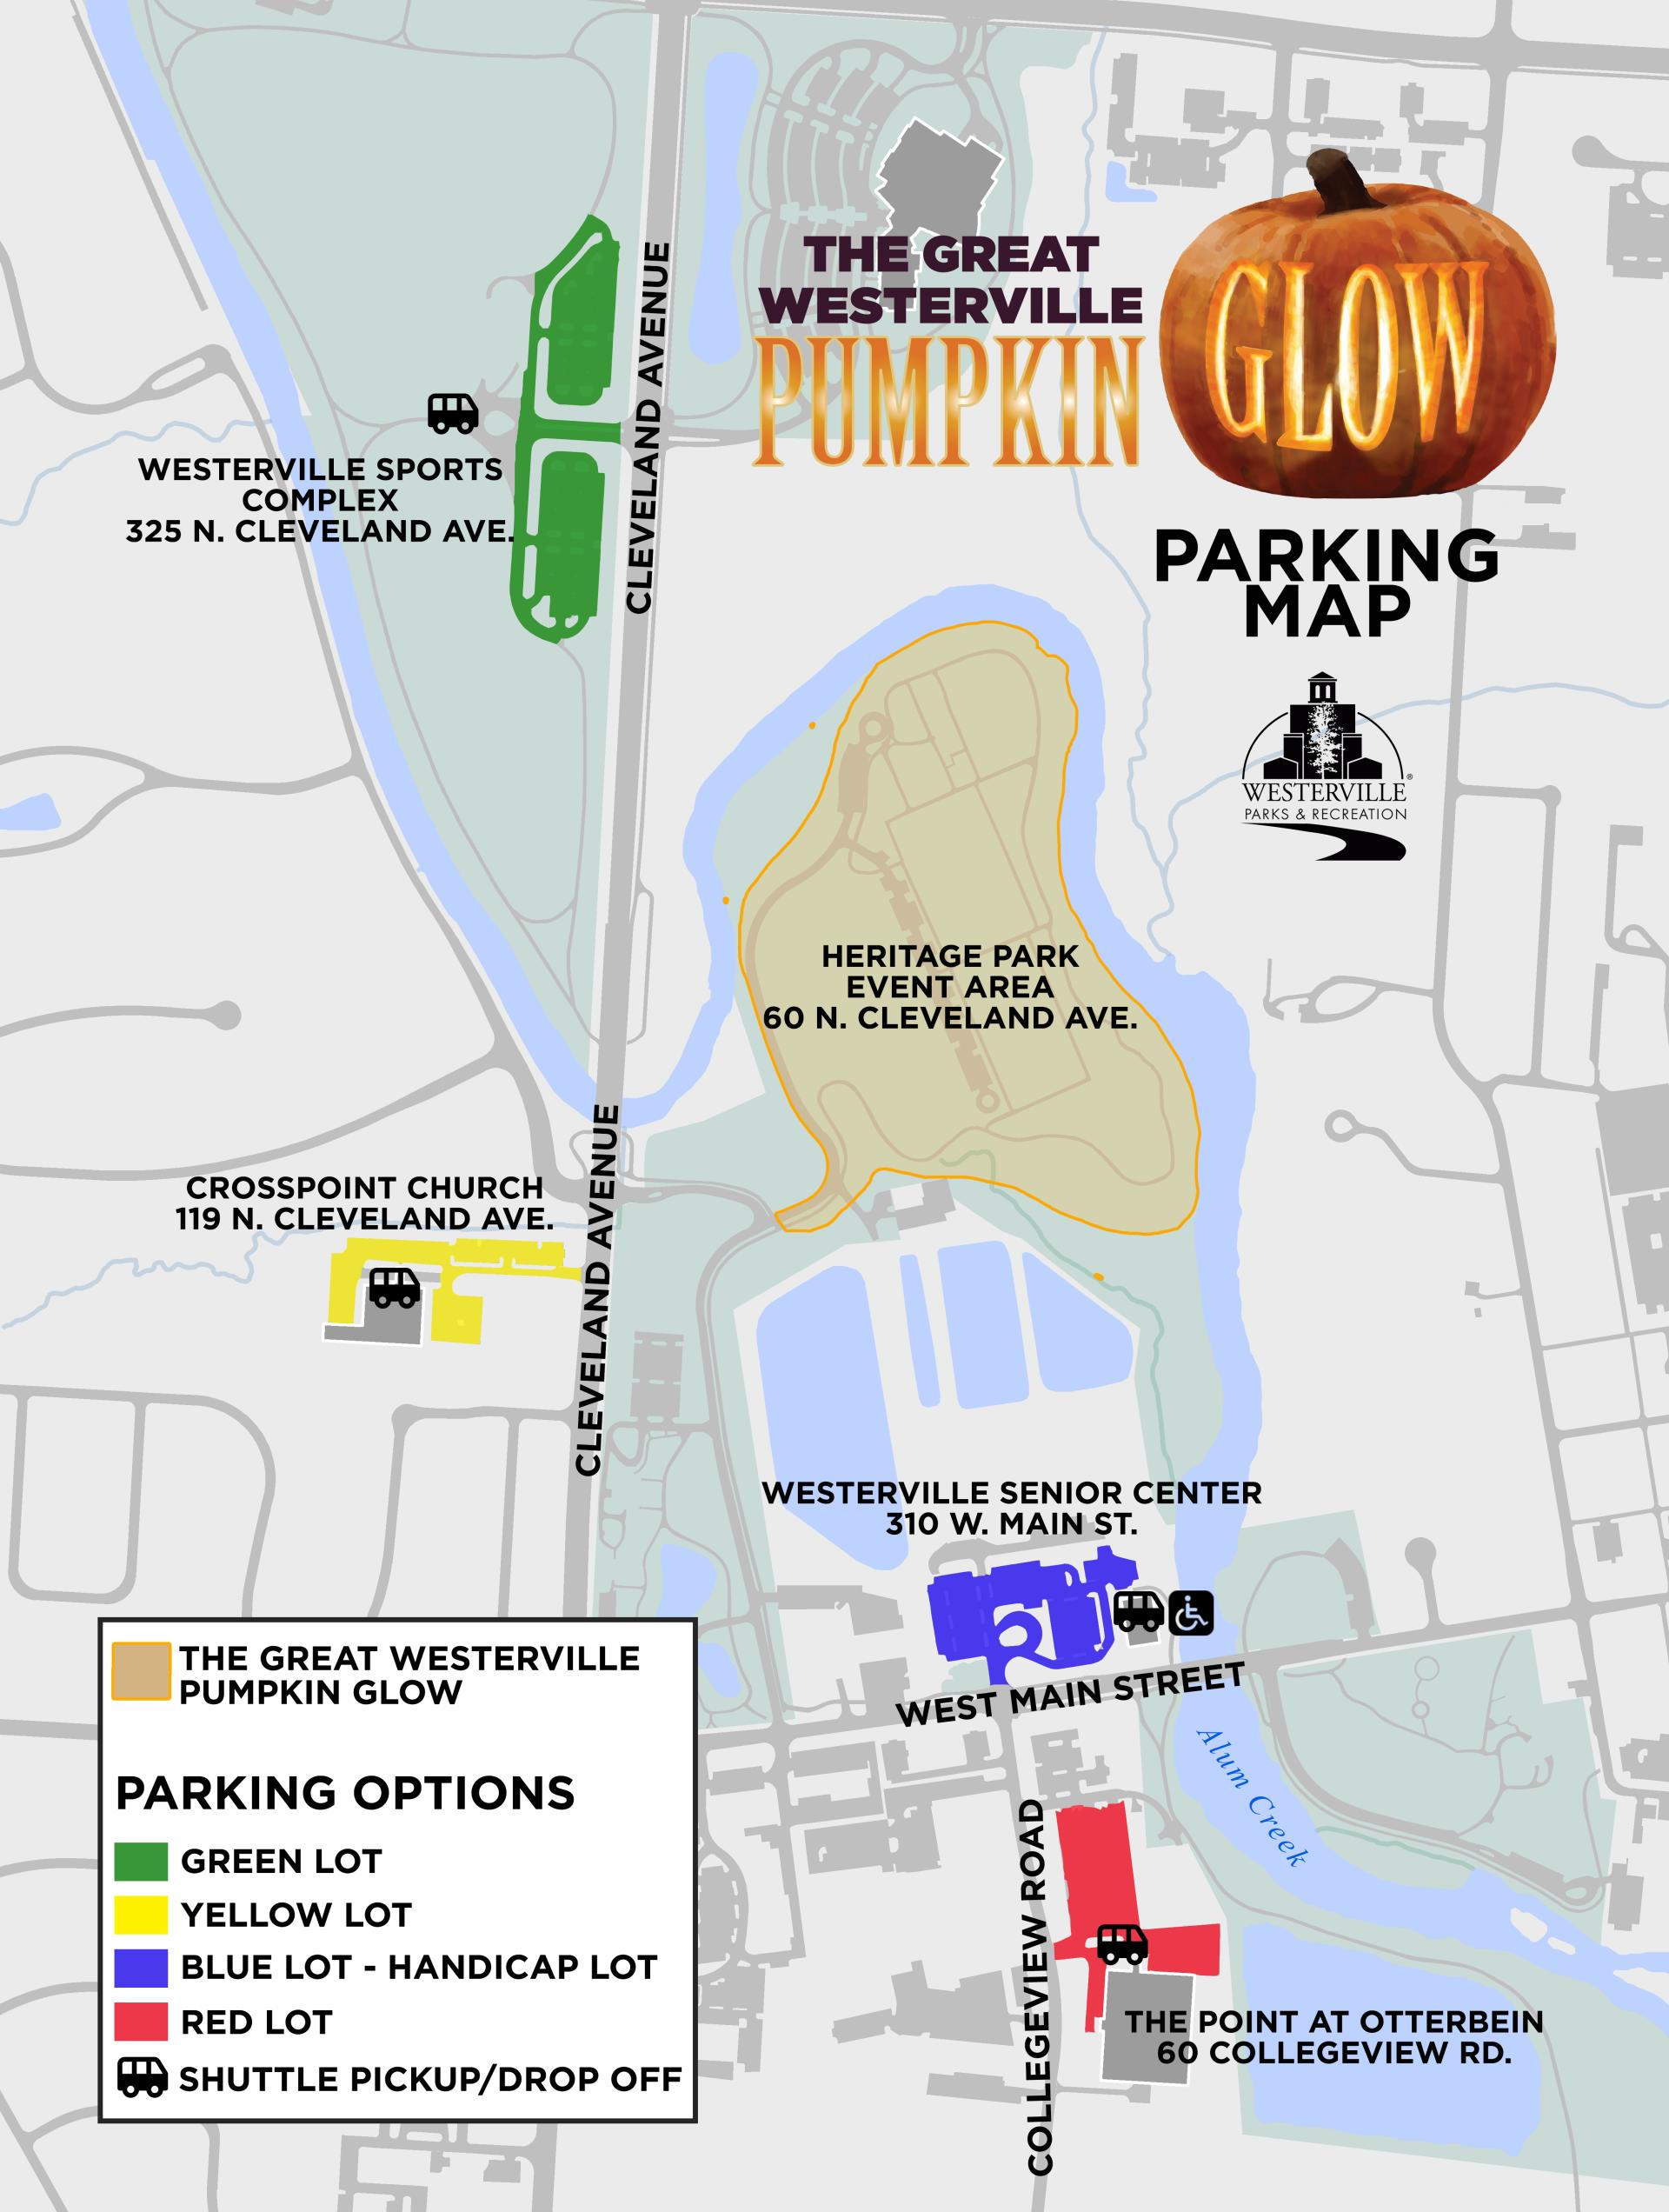 Pumpkin Glow parking map